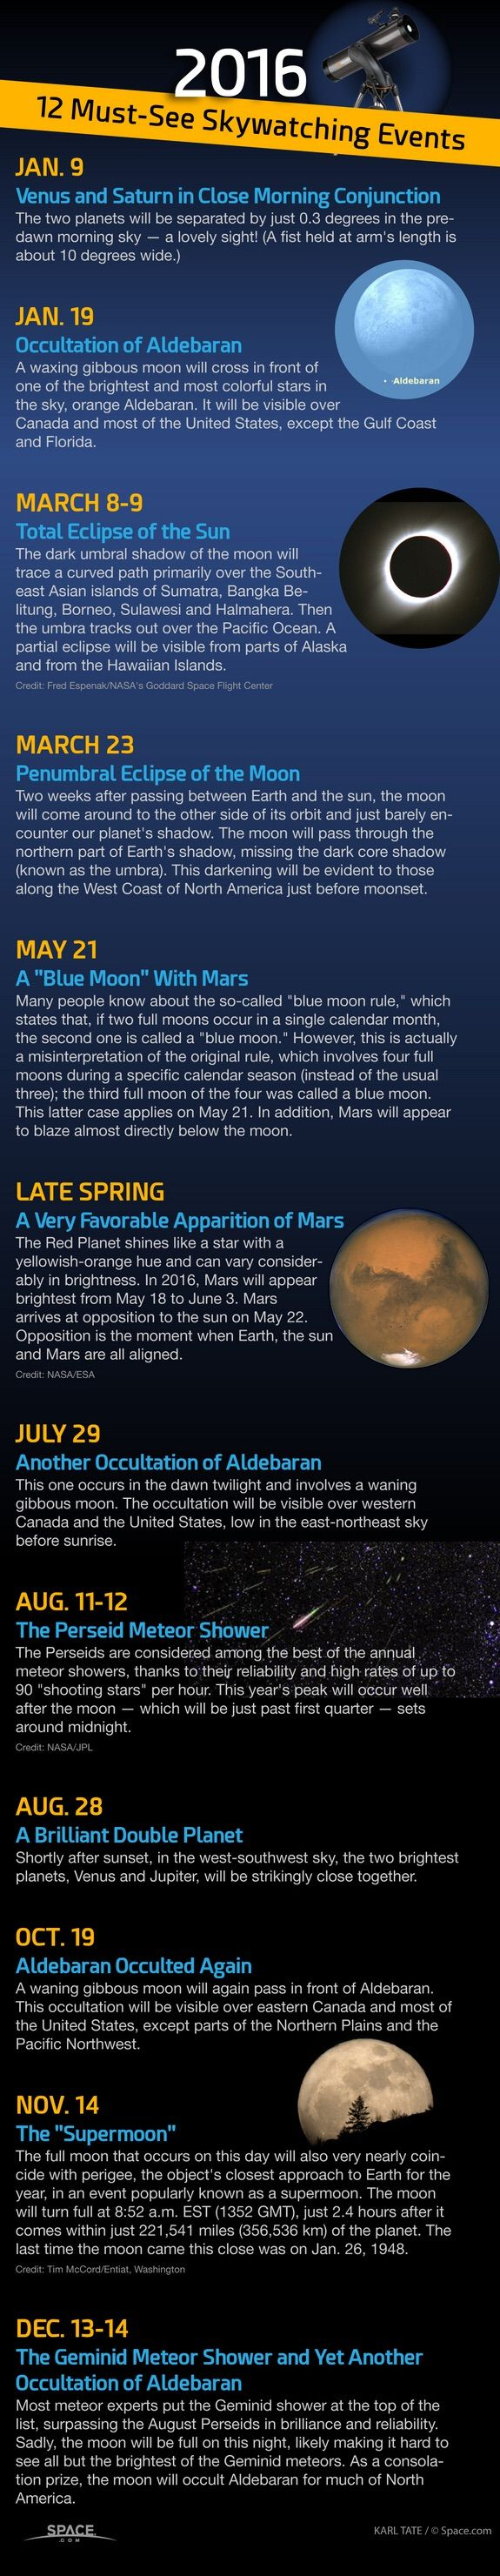 12 must-see skywatching events of 2016 : space